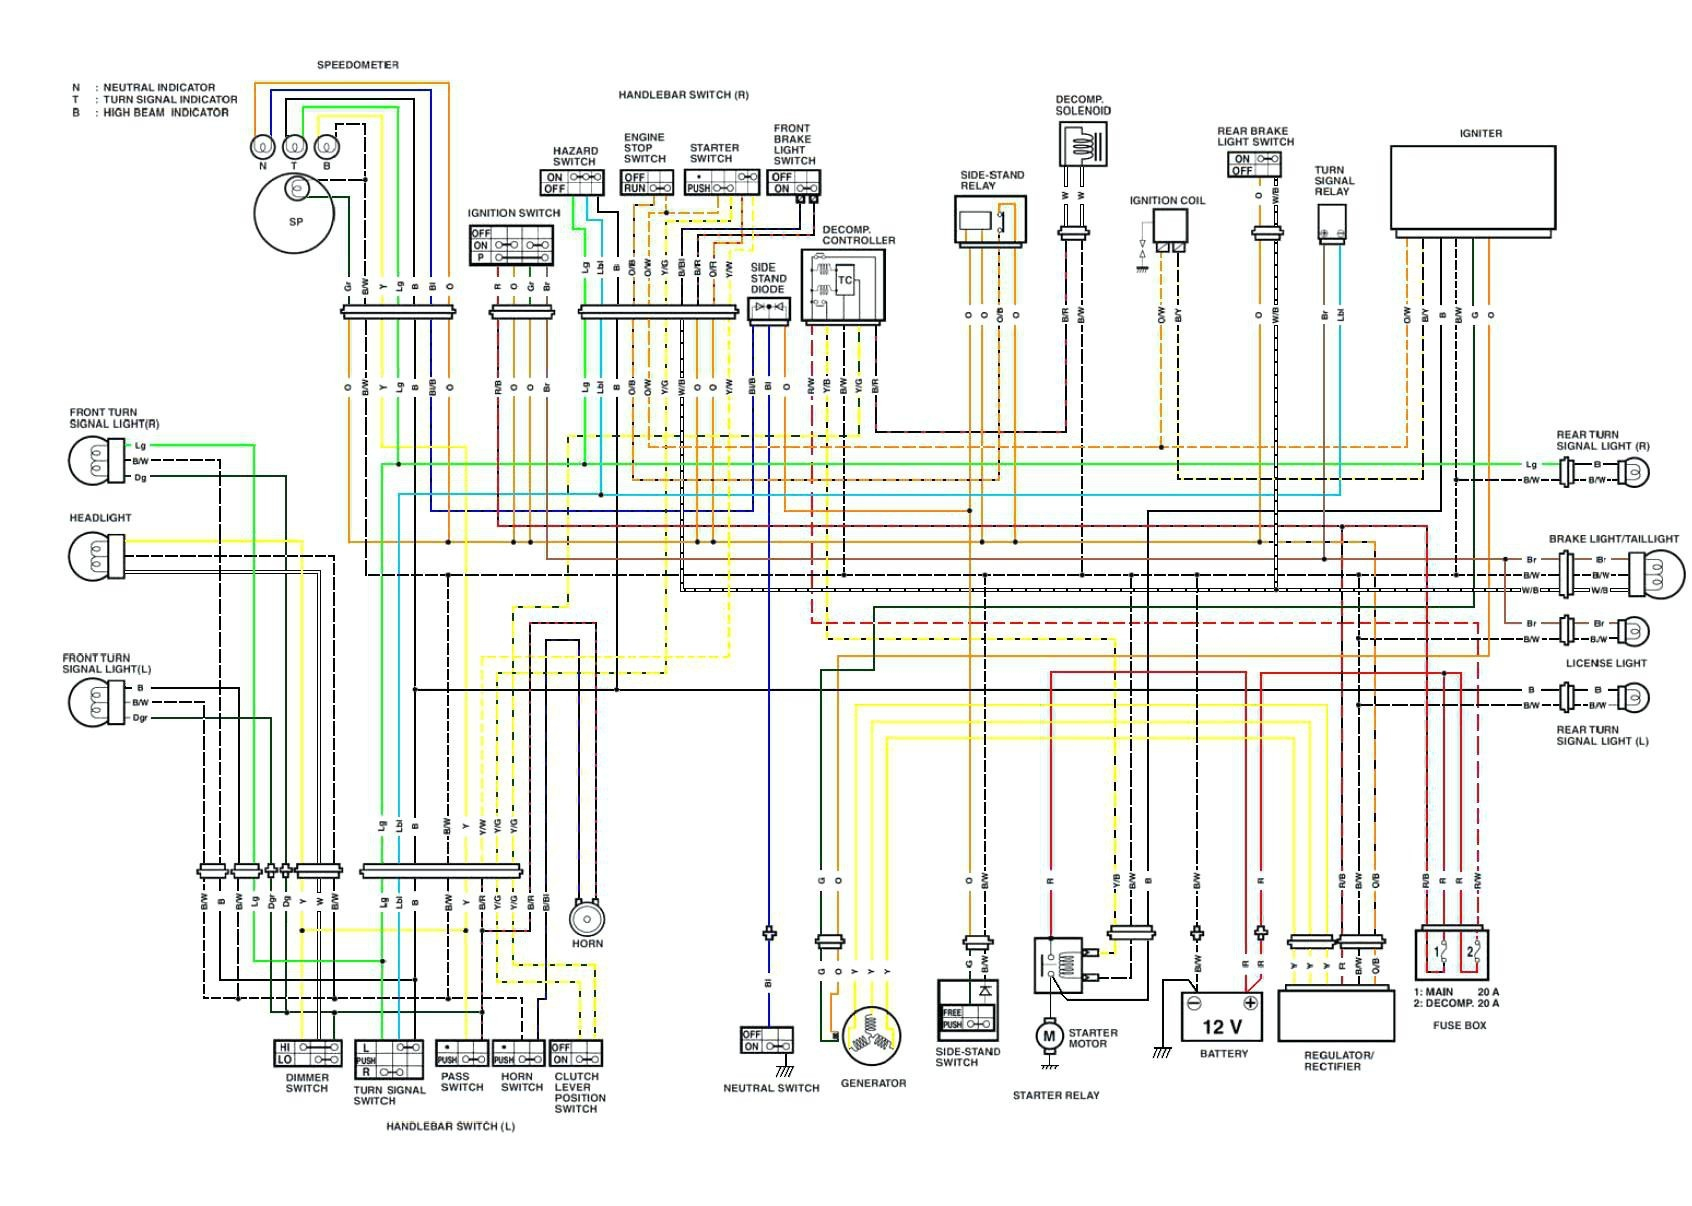 8N Ford Tractor Ignition Wiring Diagram | Best Wiring Library - 8N Ford Tractor Wiring Diagram 6 Volt